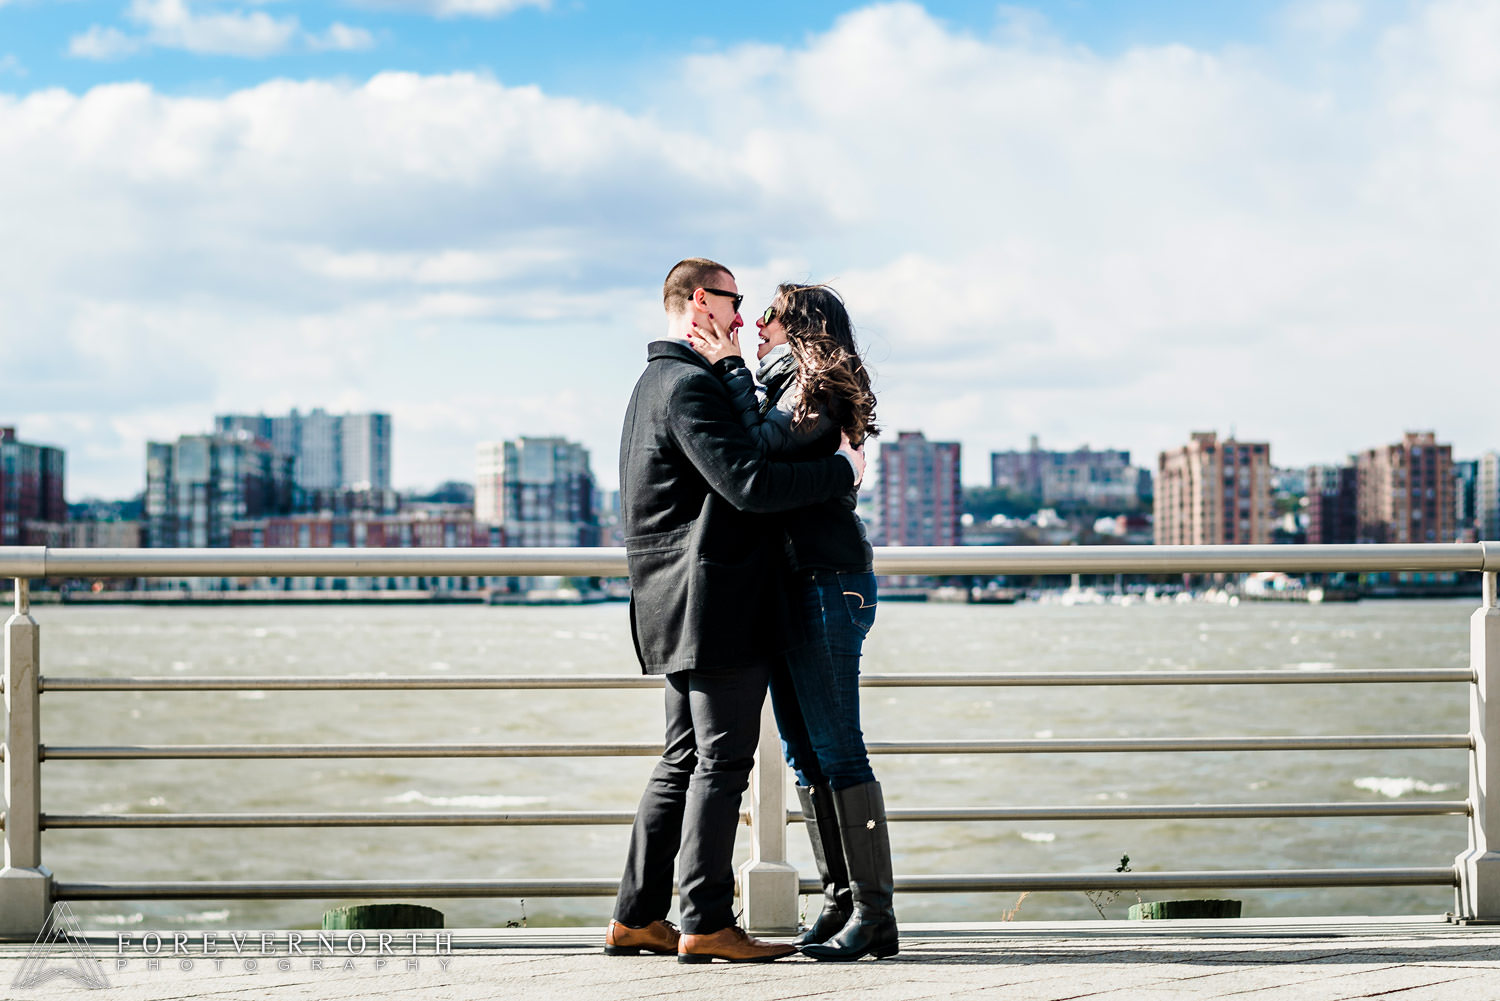 Cainero-Hudson-River-Park-Pier-62-New-York-Proposal-Engagement-Photographer-20.JPG